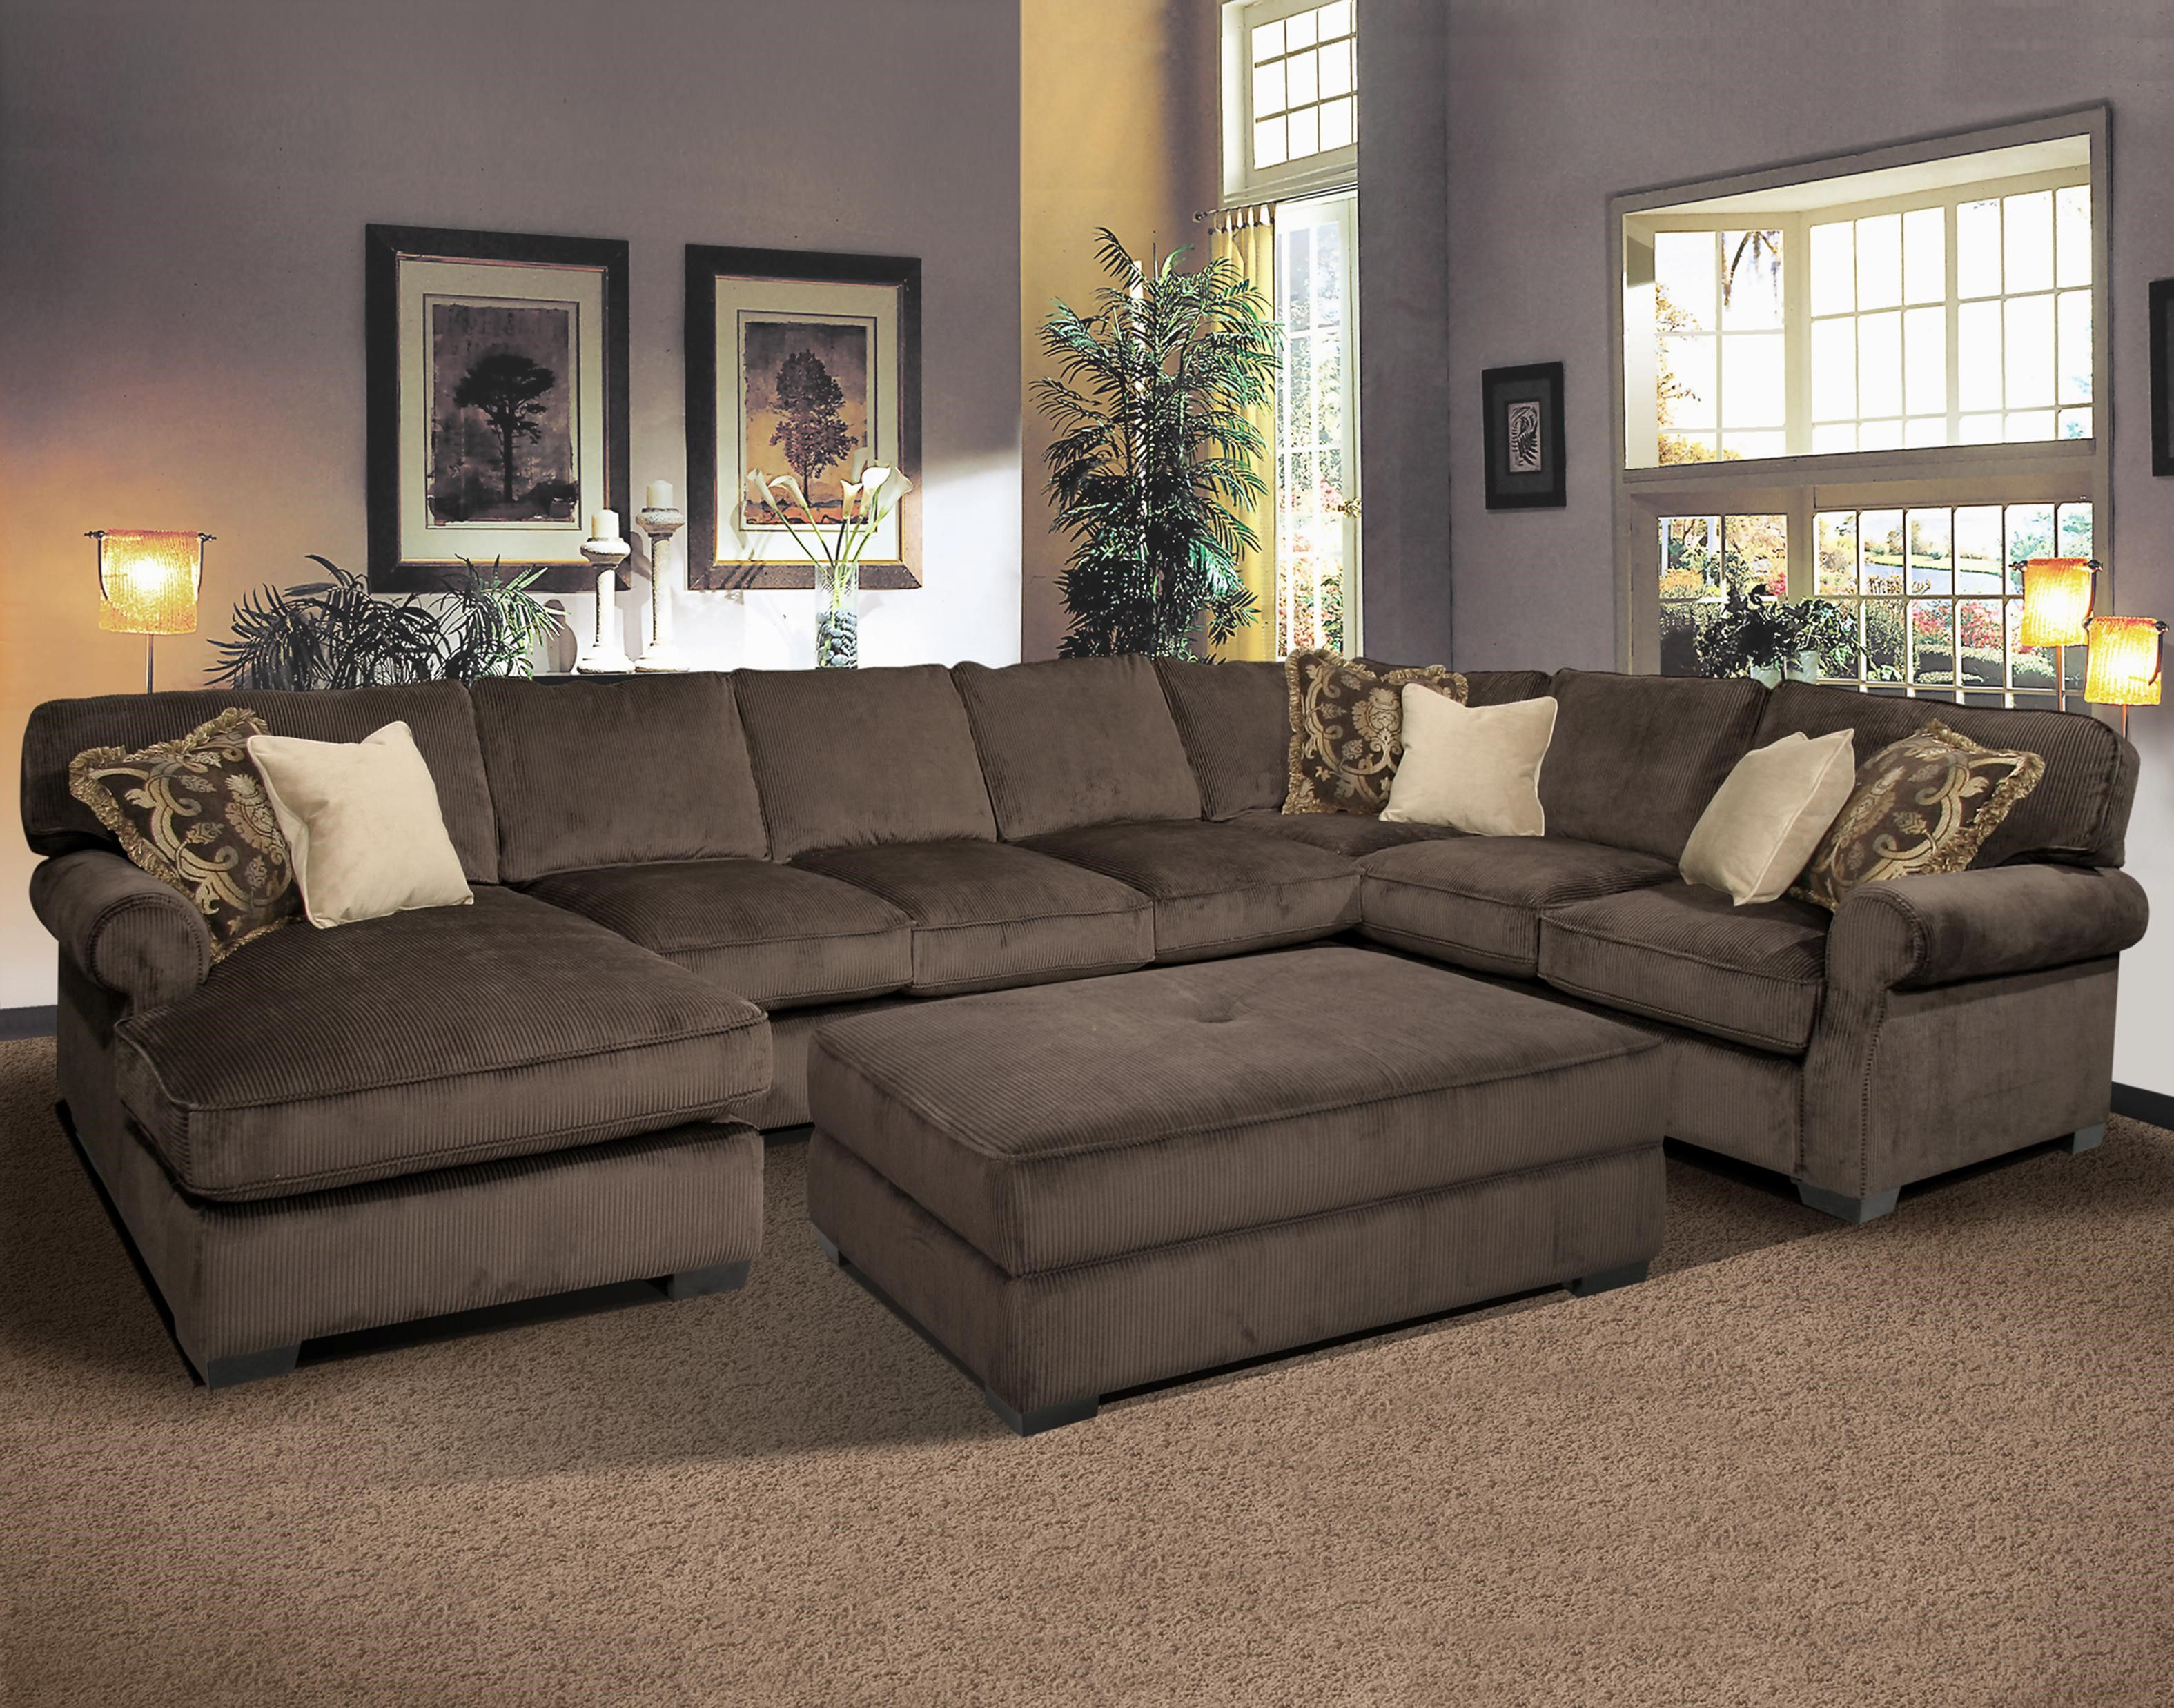 Comfortable Living Room Sofas Design With Elegant Overstuffed